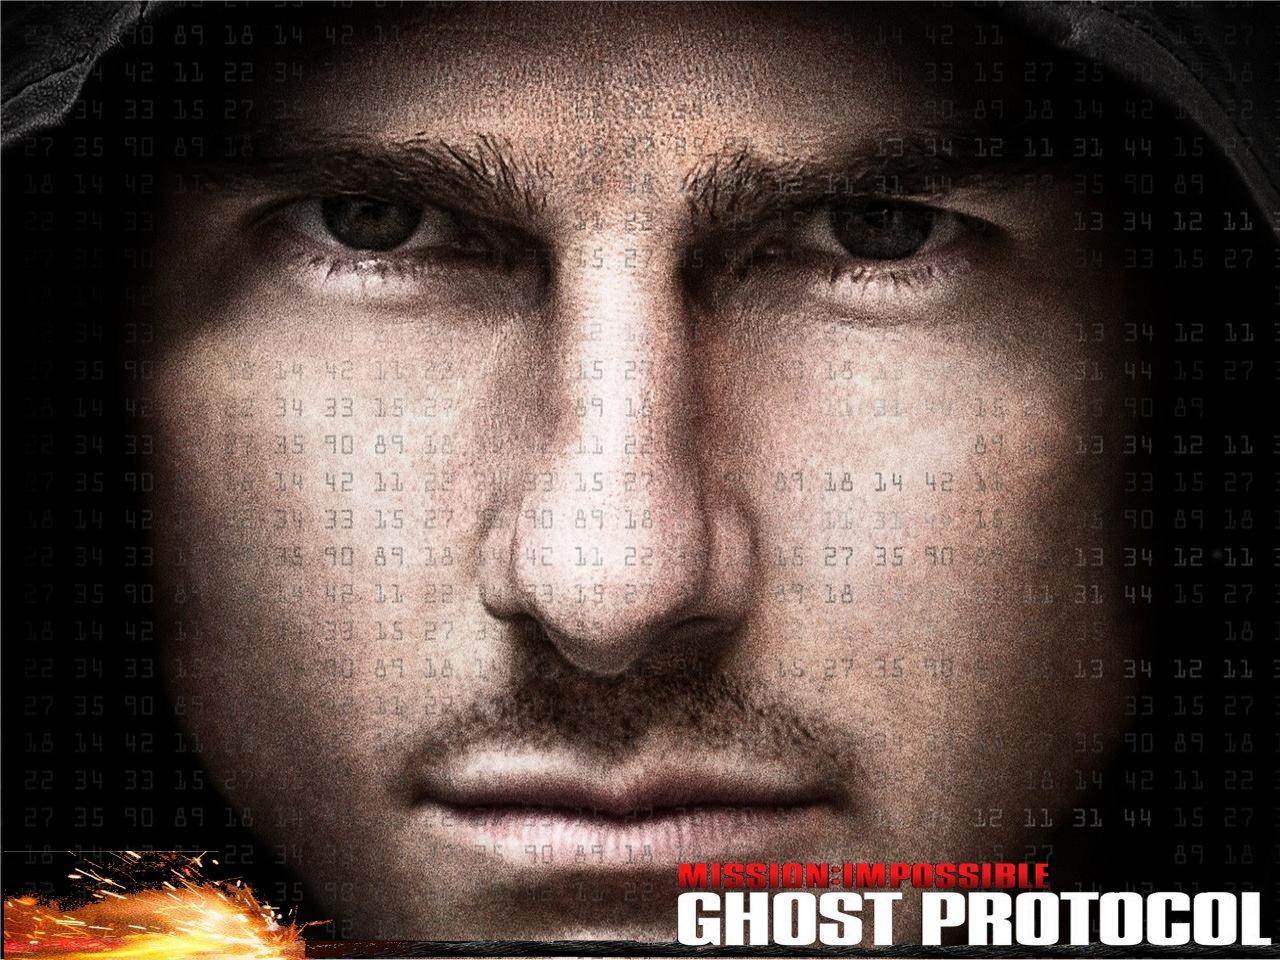 Mission Impossible Ghost Protocol 1280x960: Cranky Critic® Movie ...